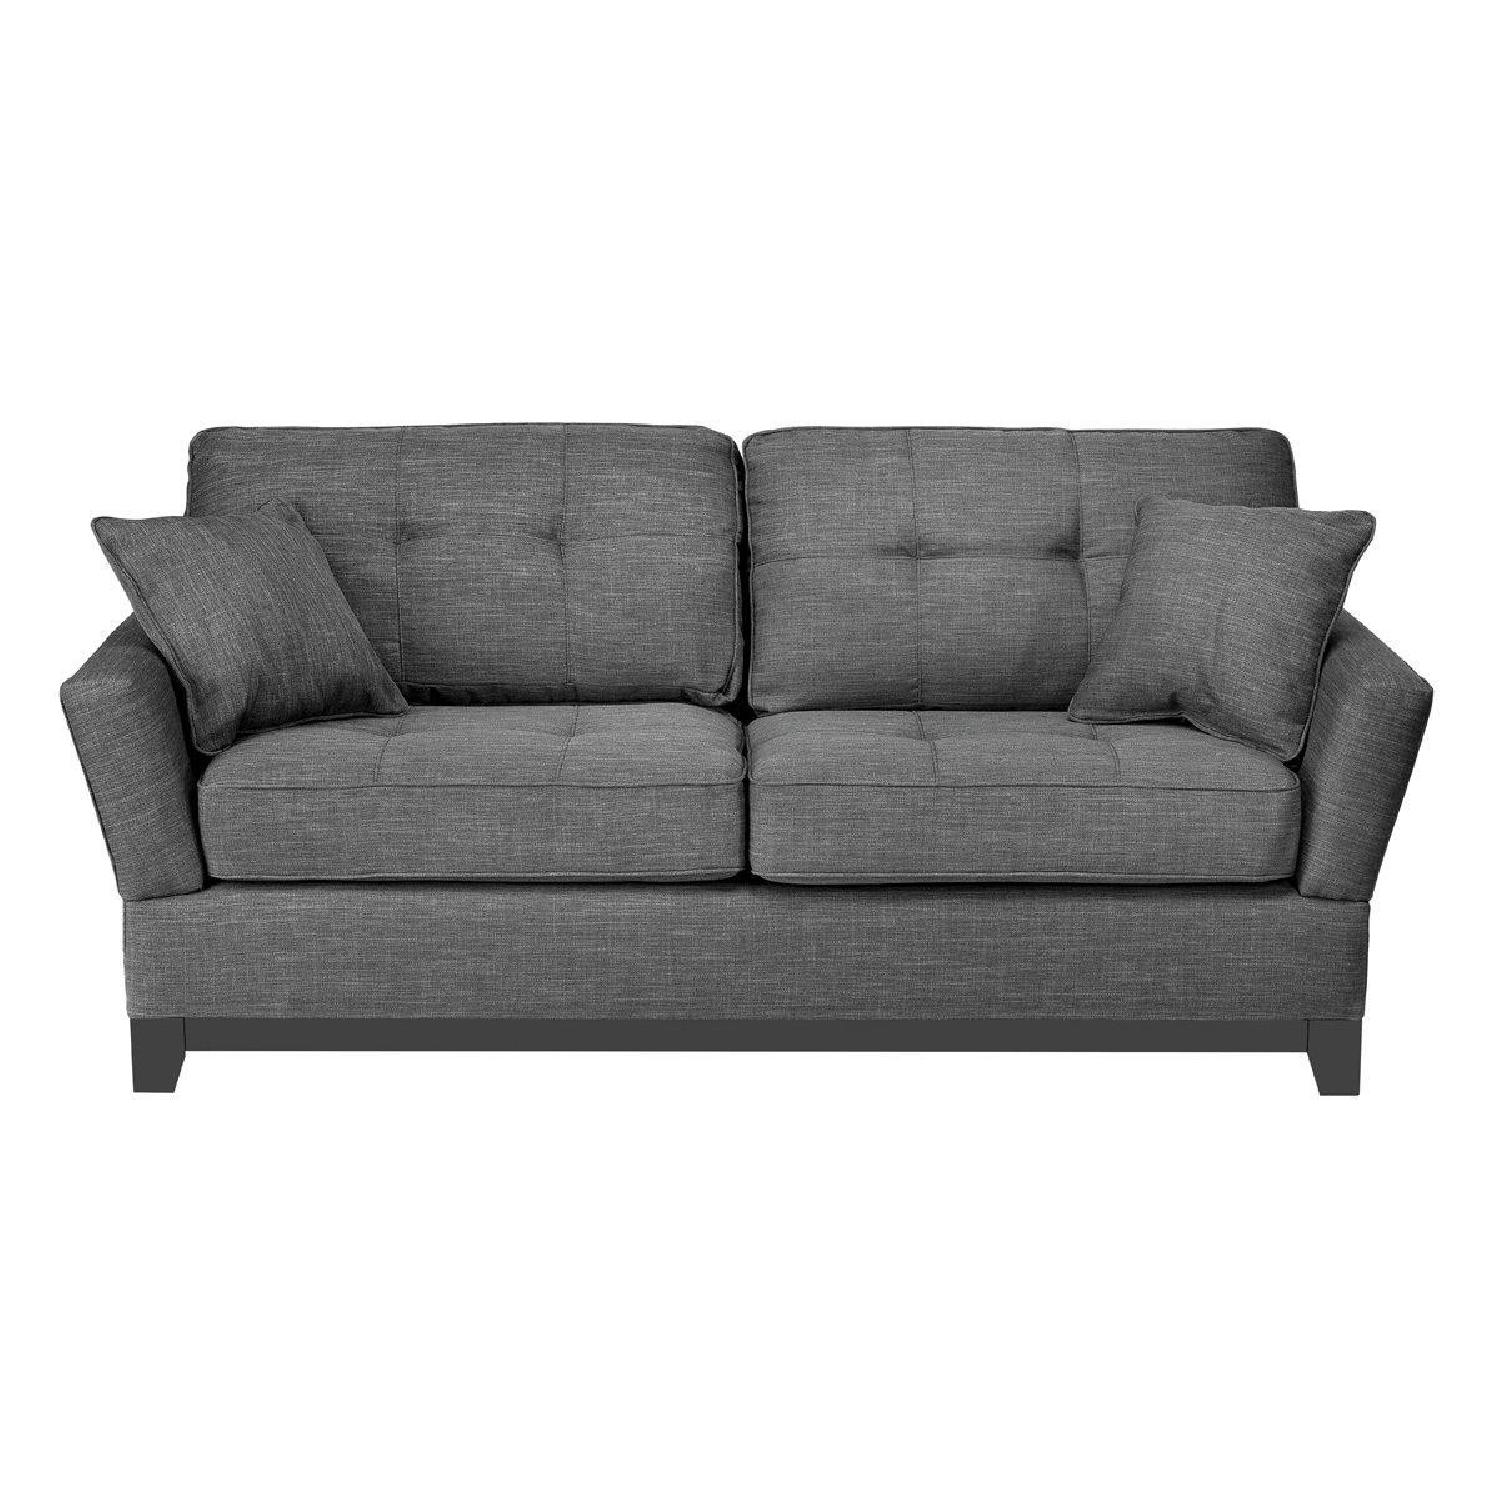 Jennifer Furniture Opus Sofa